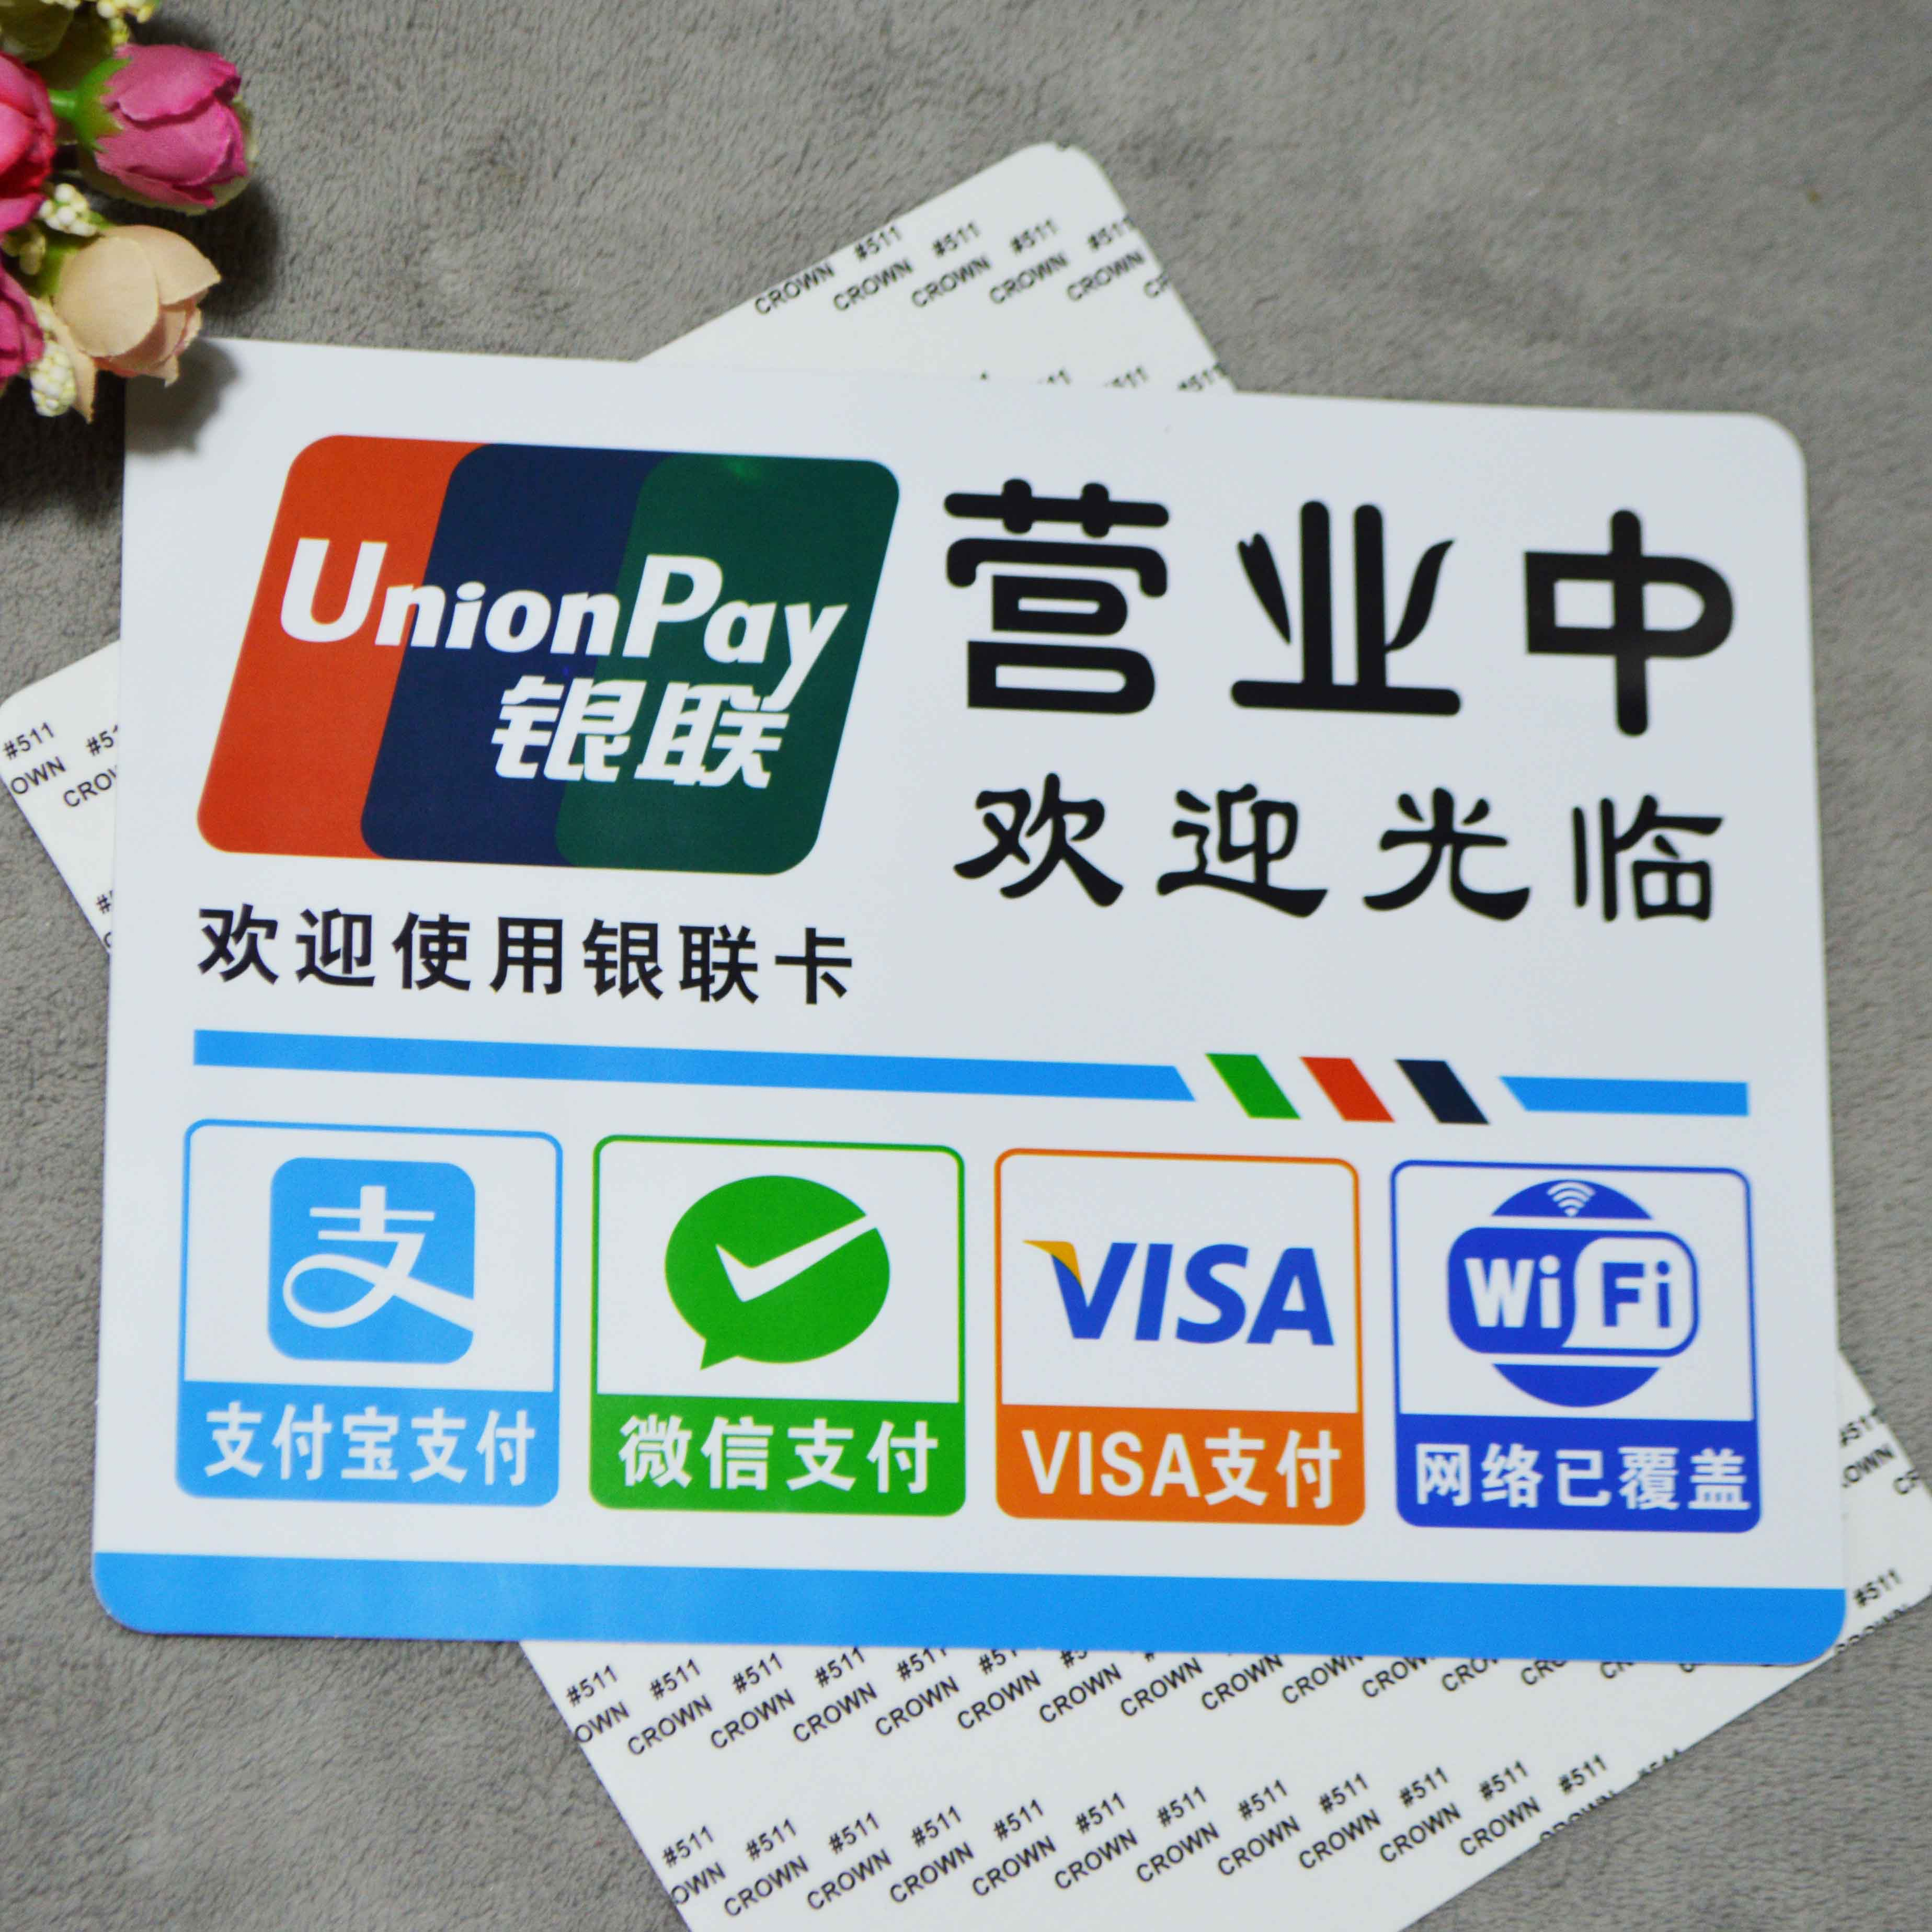 Credit card stickers for business images free business cards credit card stickers for business kamos sticker apple to pay alipay payment unionpay logo micro letter magicingreecefo Choice Image